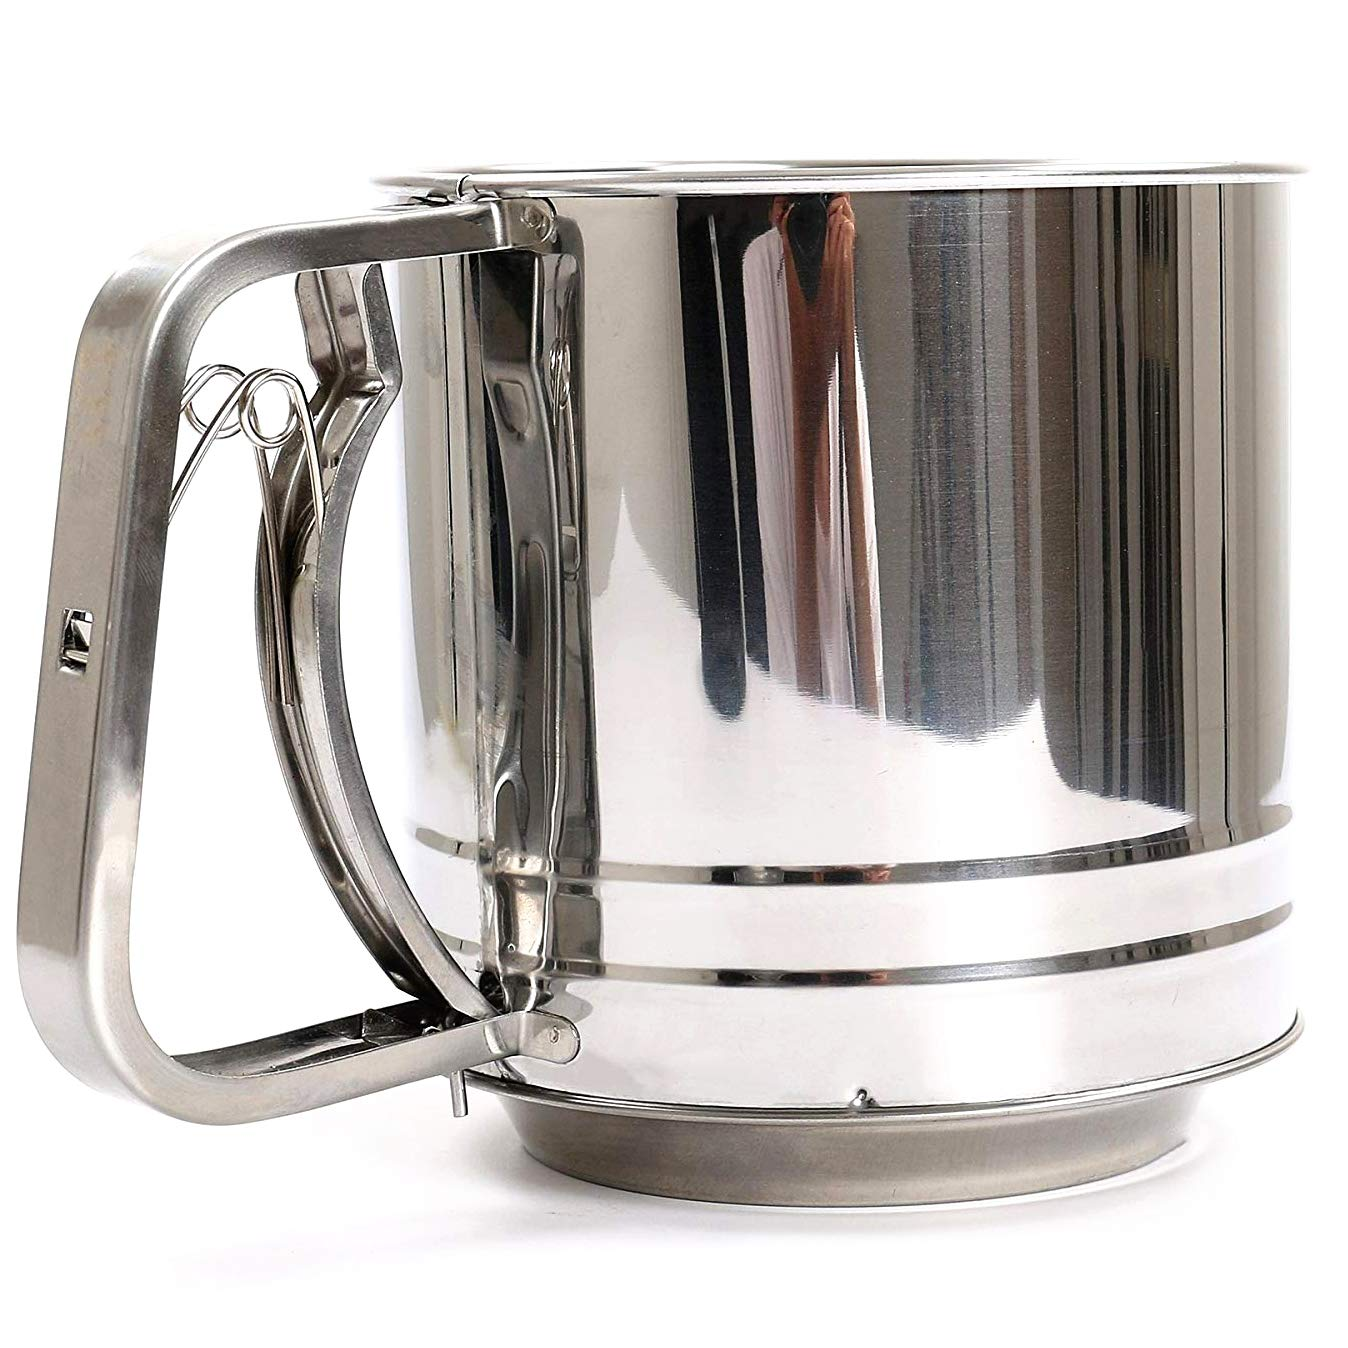 NPYPQ Flour Sifter, Stainless Steel Flour Sieve Sifters Mesh Cup - One Hand Crank - Very Fine - Large